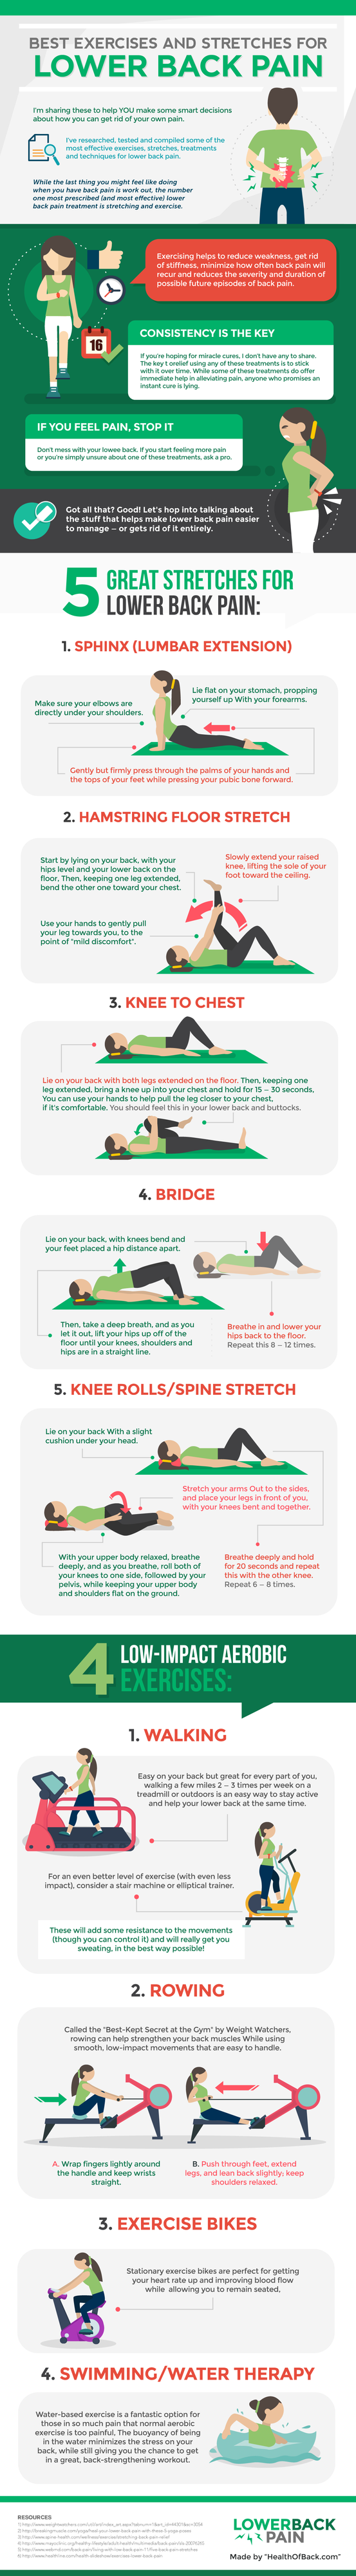 9 Exercises for Lower Back Pain (INFOGRAPHIC)